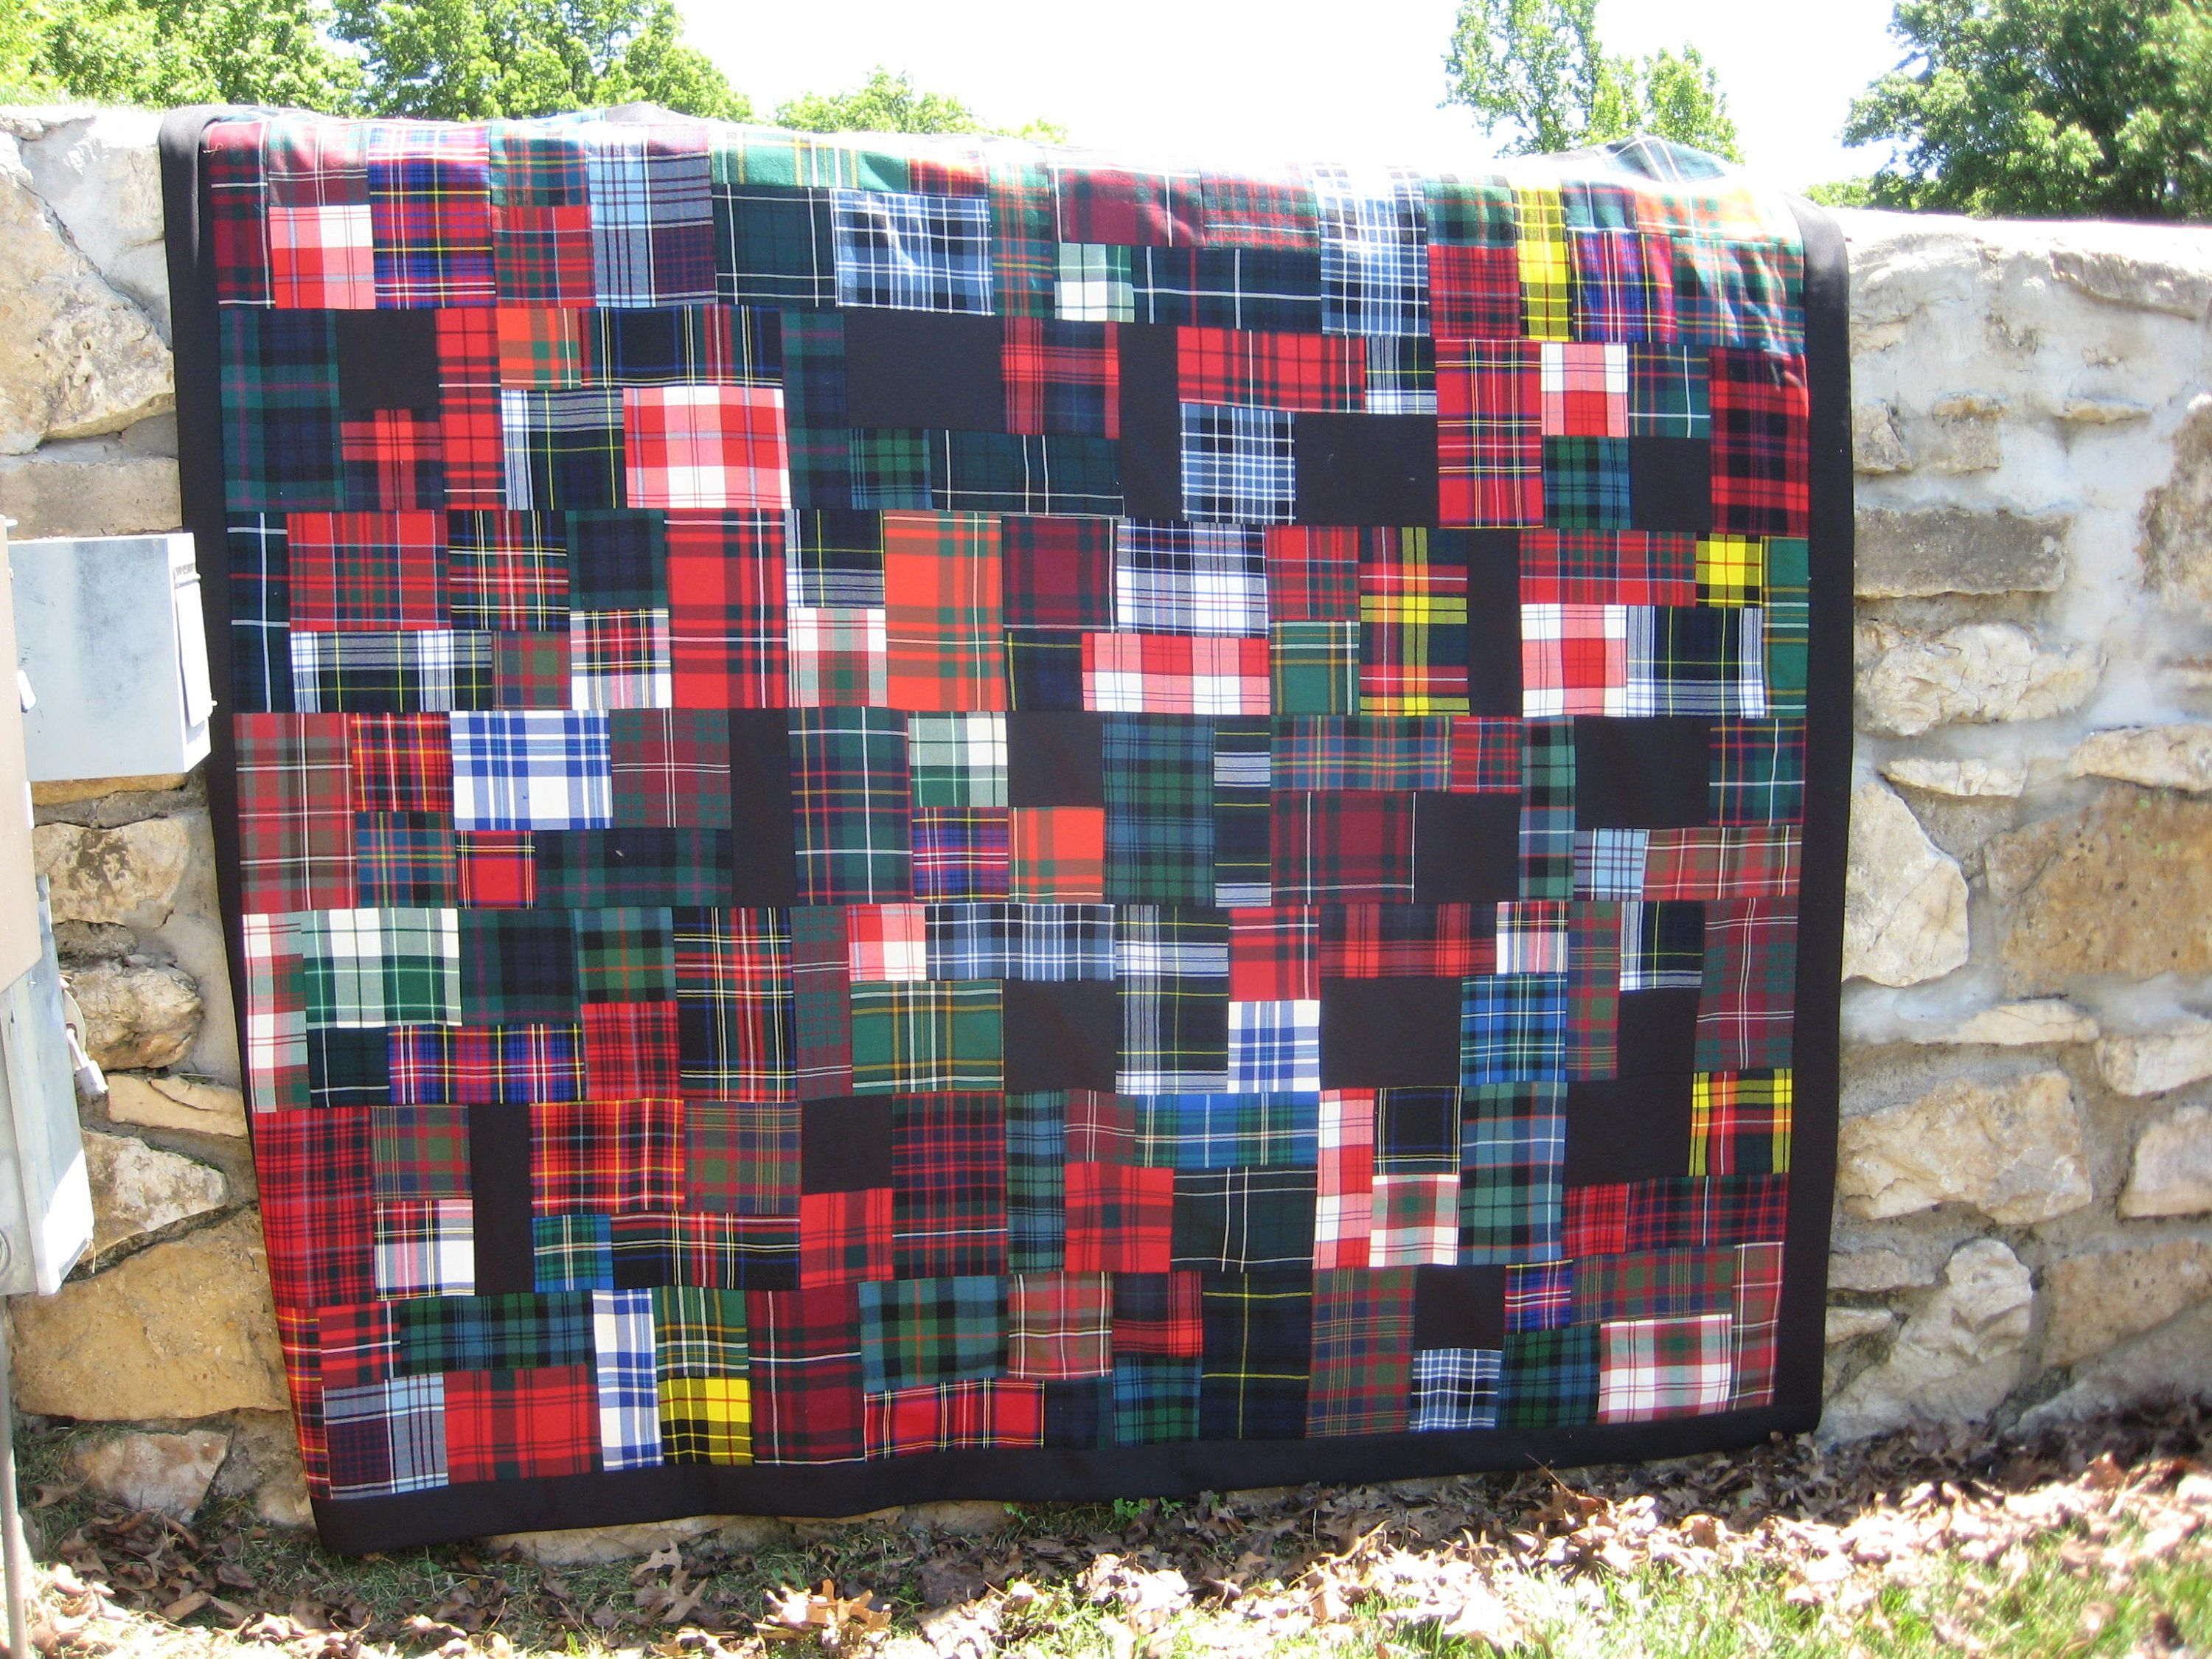 Sale Authentic Scottish Wool Tartan Patchwork Queen Quilt With Classic Tartans By Tartanquiltsandmore On Etsy Scottish Tartans Queen Quilt Tartan